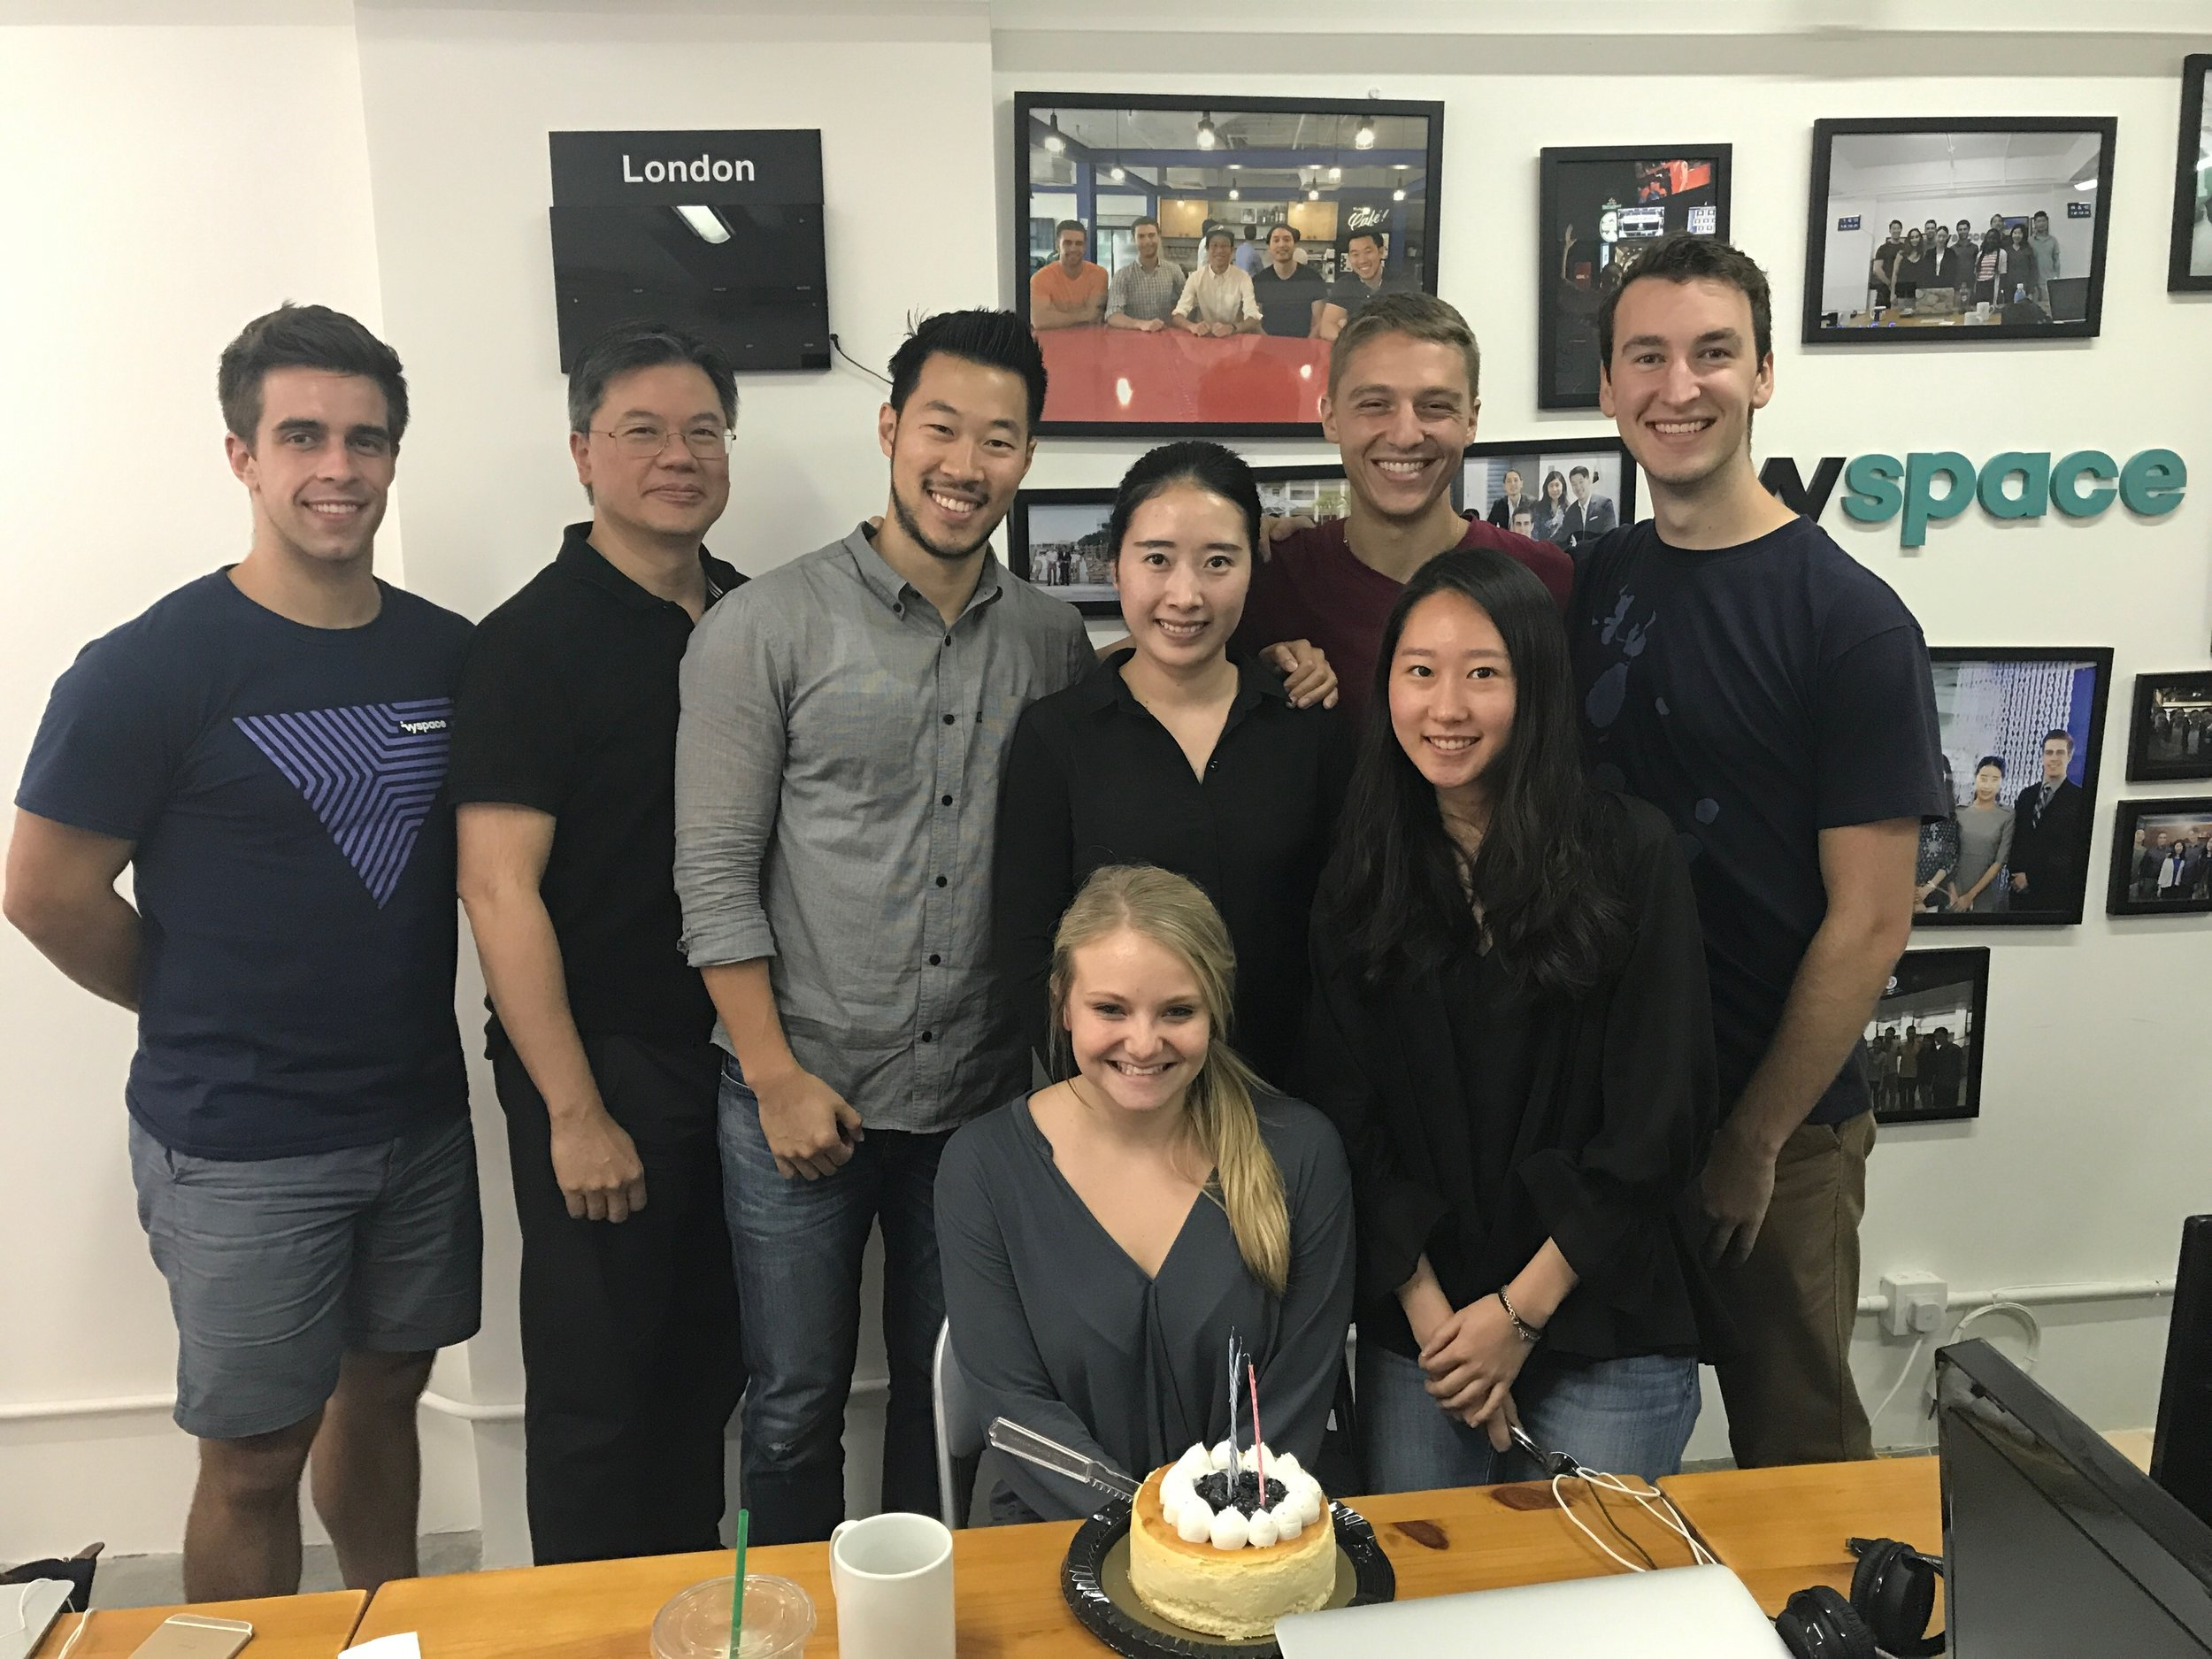 McLean and the Hong Kong cohort bonding over birthday cake!